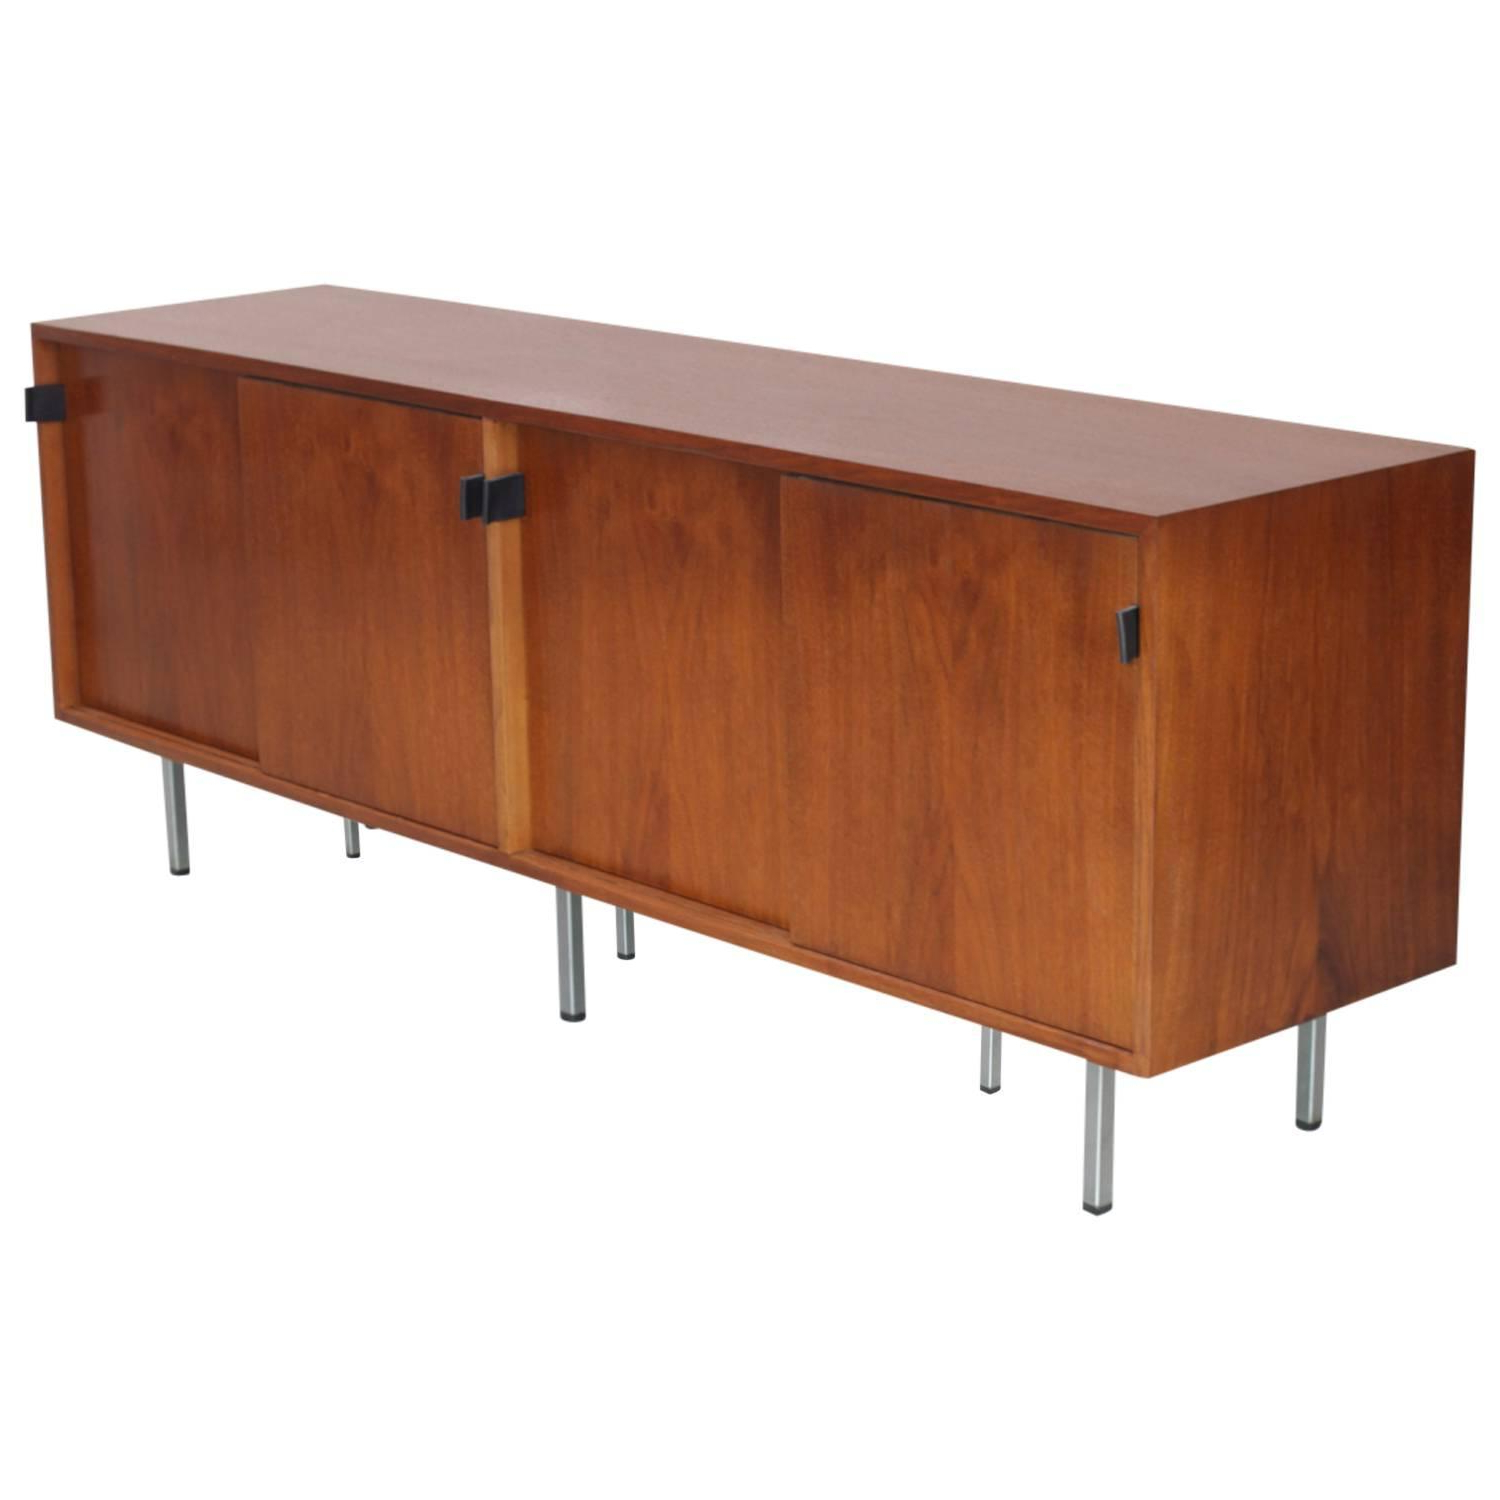 Florence Knoll Credenza Sideboard Walnut With Leather Pulls Regarding Retro Holistic Credenzas (View 5 of 20)